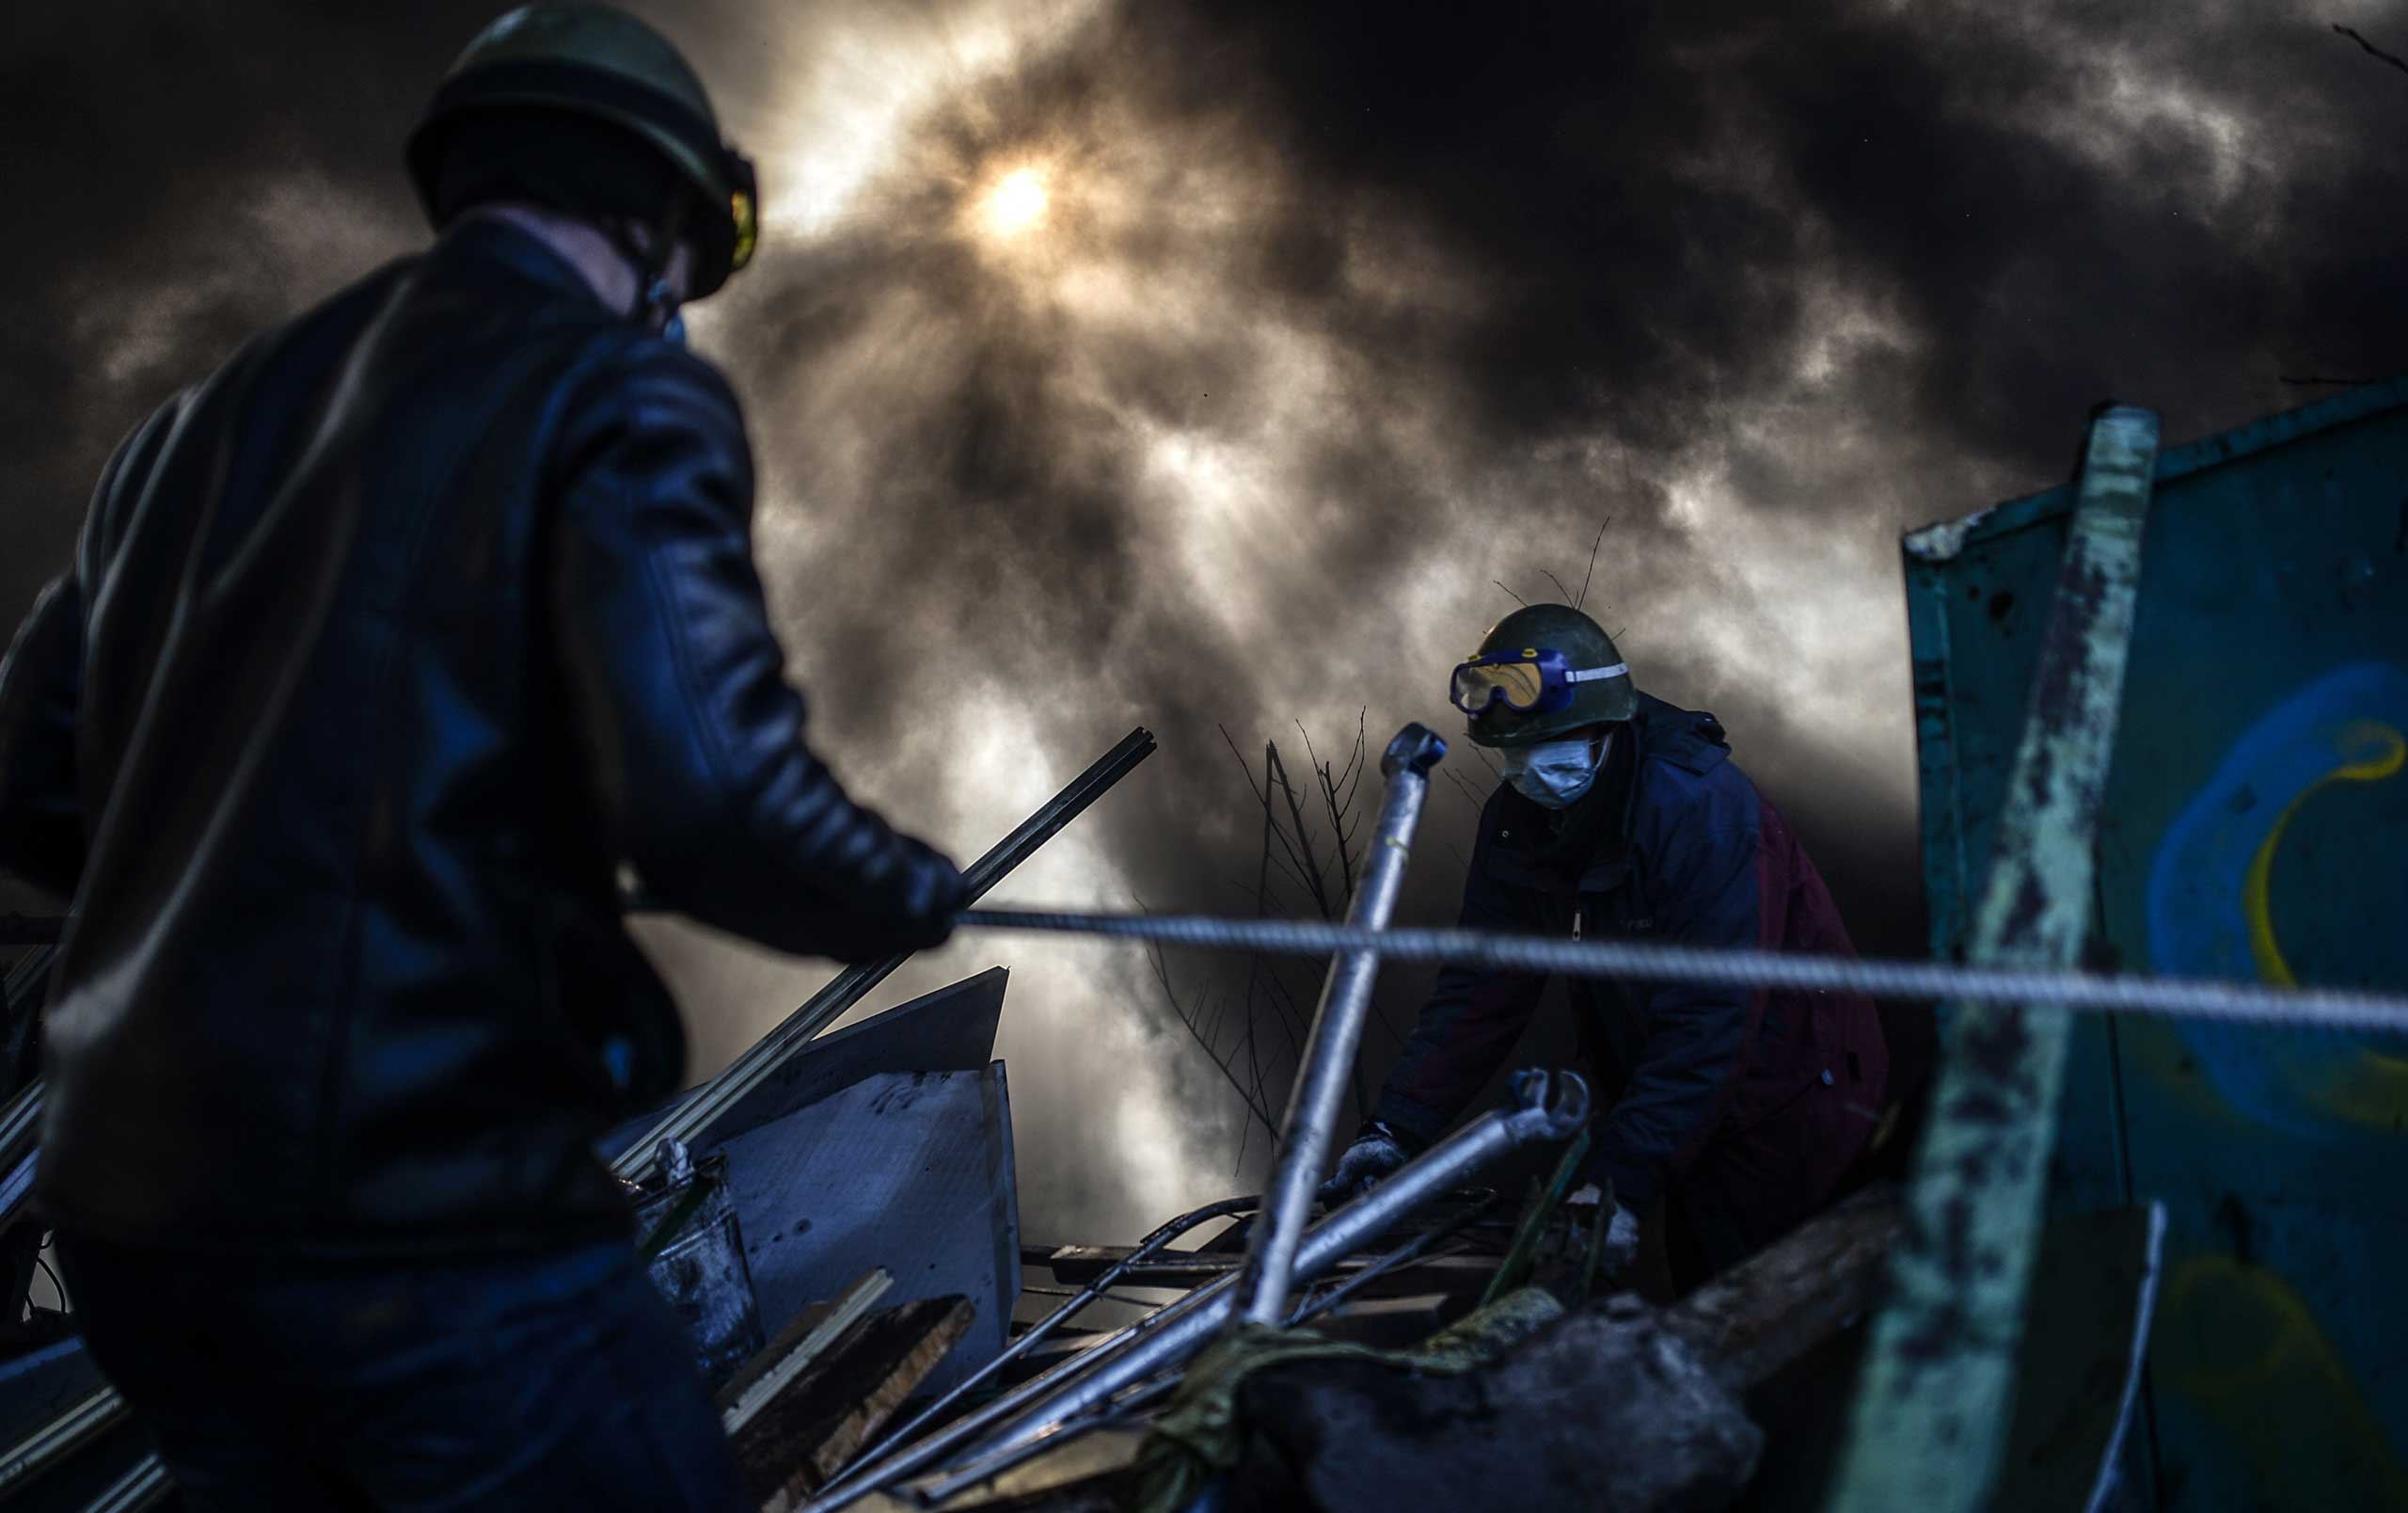 Protesters build a barricade early in the morning on Feb. 21, 2014 at the Independent square in Kiev, Ukraine.